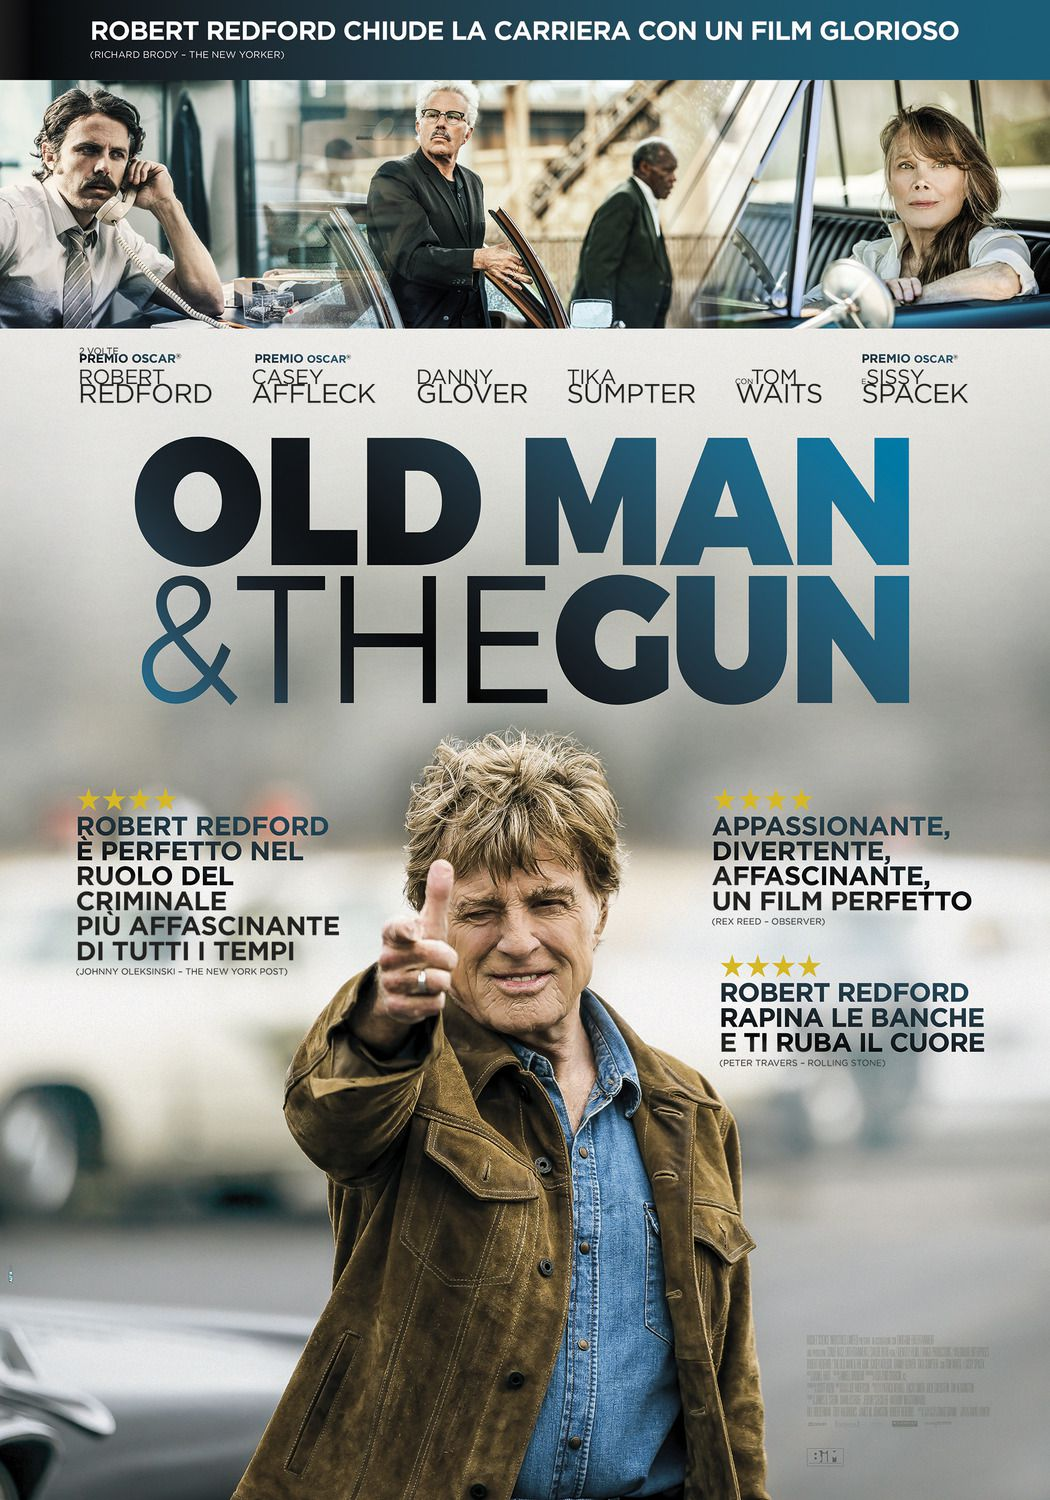 The Old Man and the Gun (2018) - Robert Redford